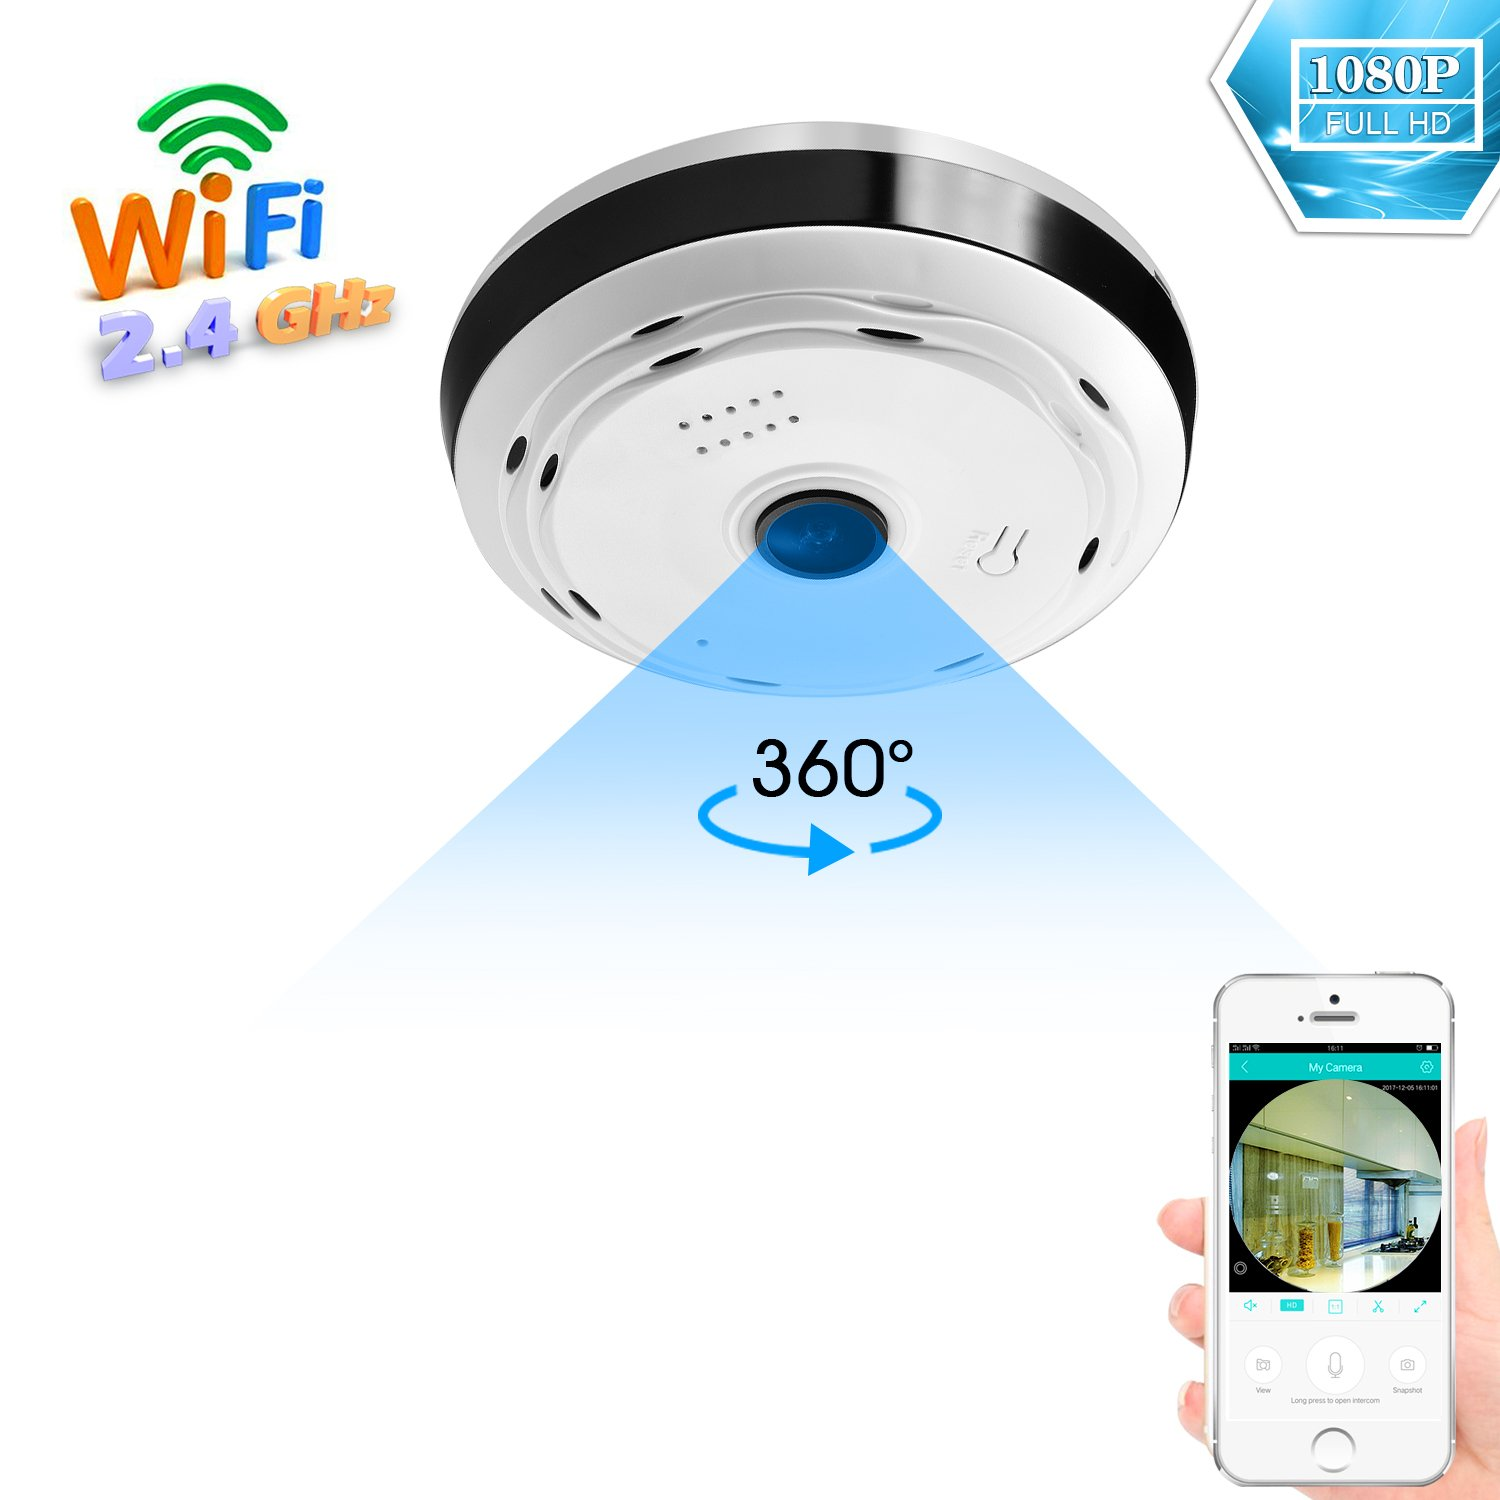 BESDERSEC 360 Degree Panoramic Wifi Camera HD 1080P Security Camera Baby Monitor Home Camera Pet Monitor Two Way Audio Video Camera Remote Viewing Night Vision Motion Detection Wireless Cameras 2.4GHZ